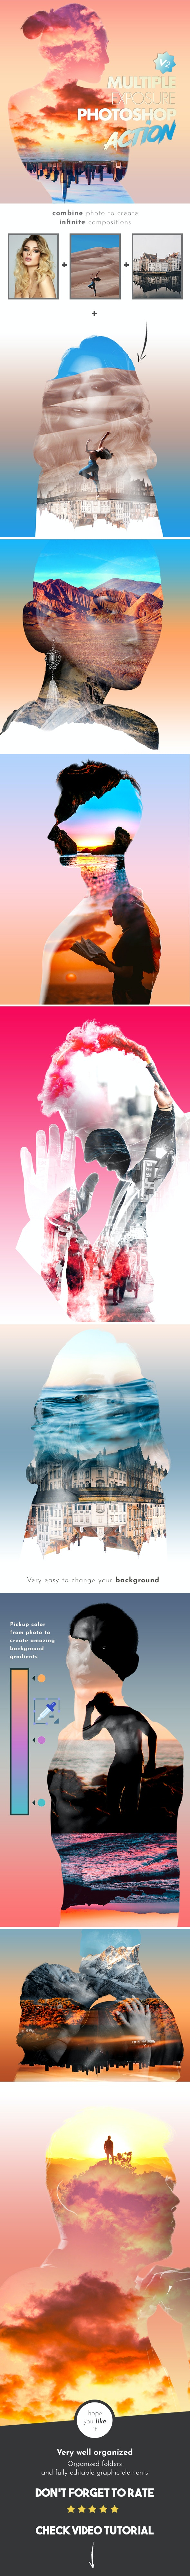 Multiple Exposure V2 Photoshop Action - Photo Effects Actions